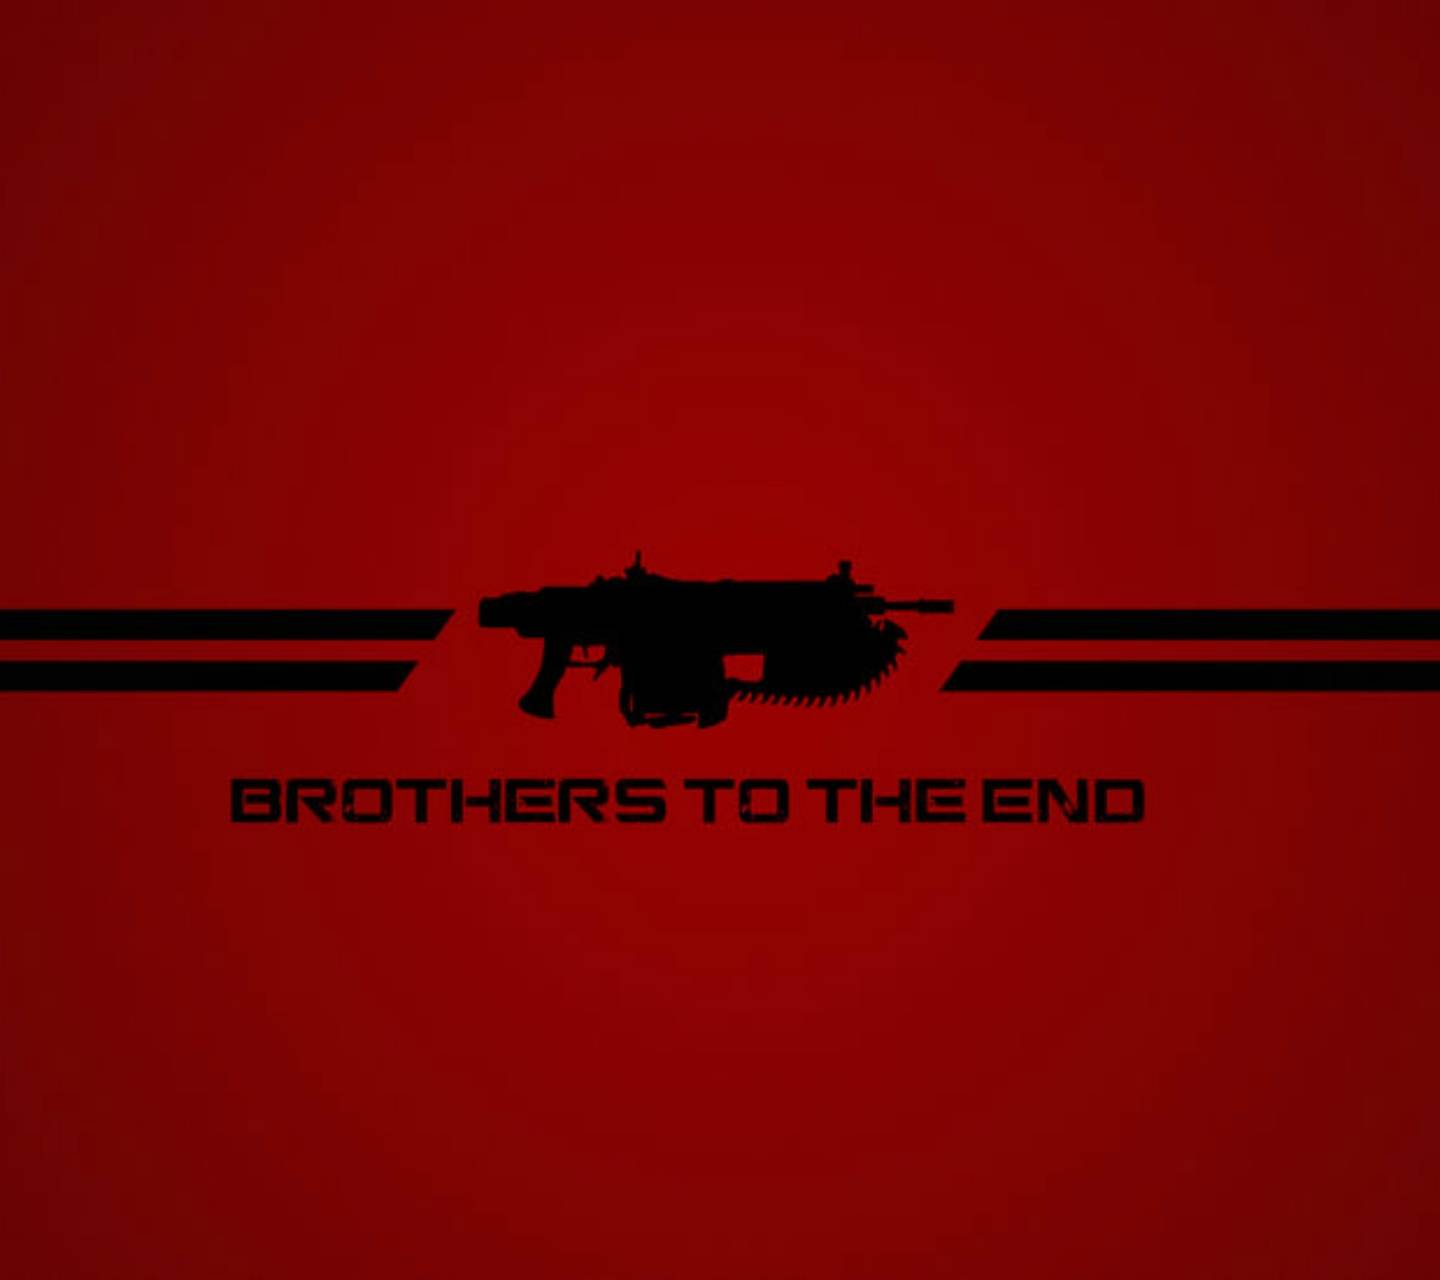 Brothers To The End Wallpaper By Storm Dd Free On Zedge